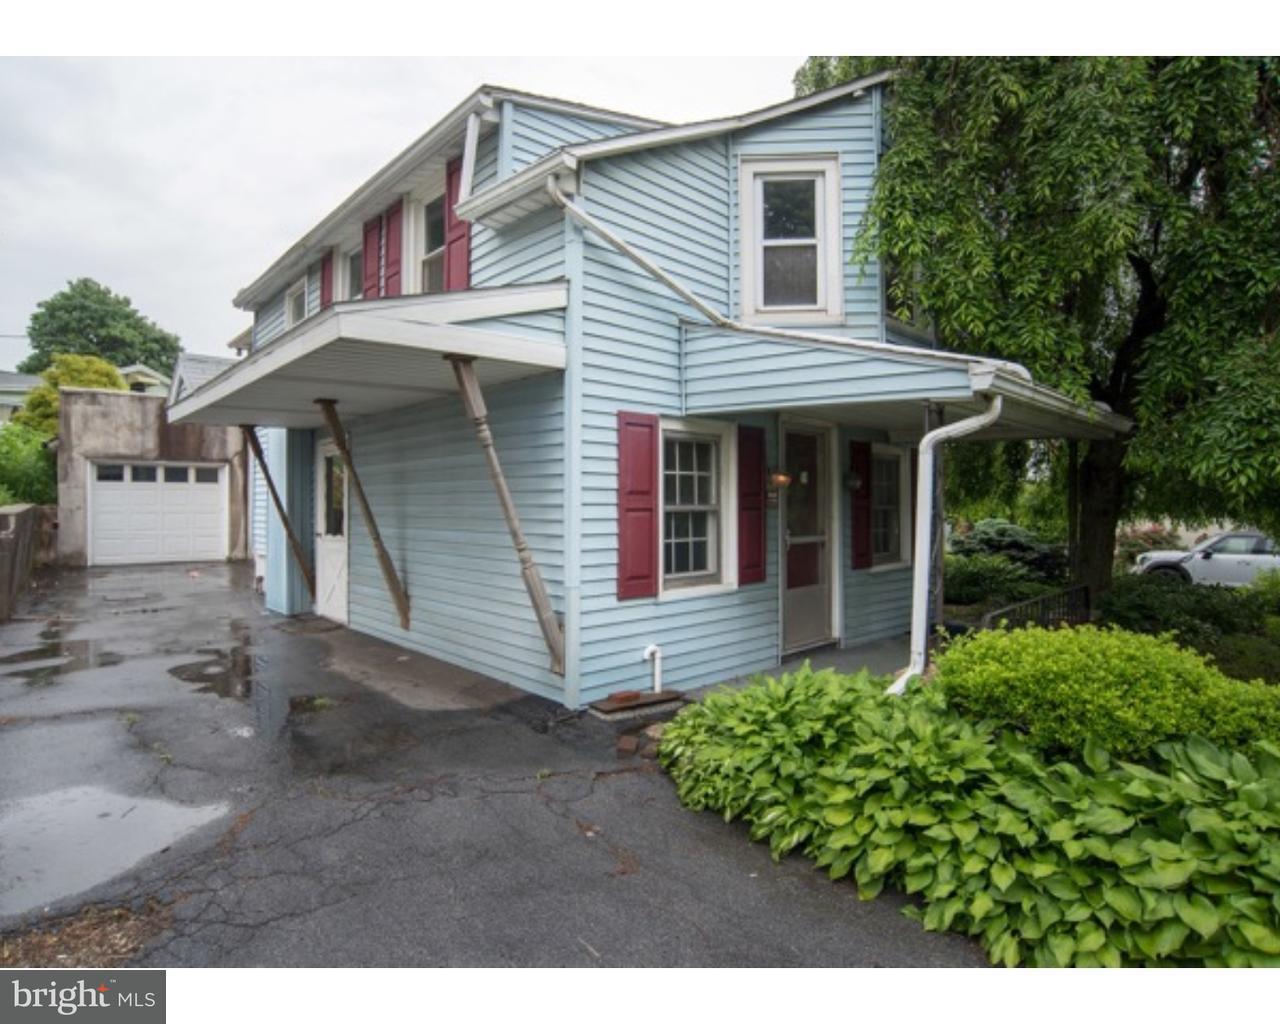 3110 PRICETOWN RD, TEMPLE - Listed at $115,000, TEMPLE